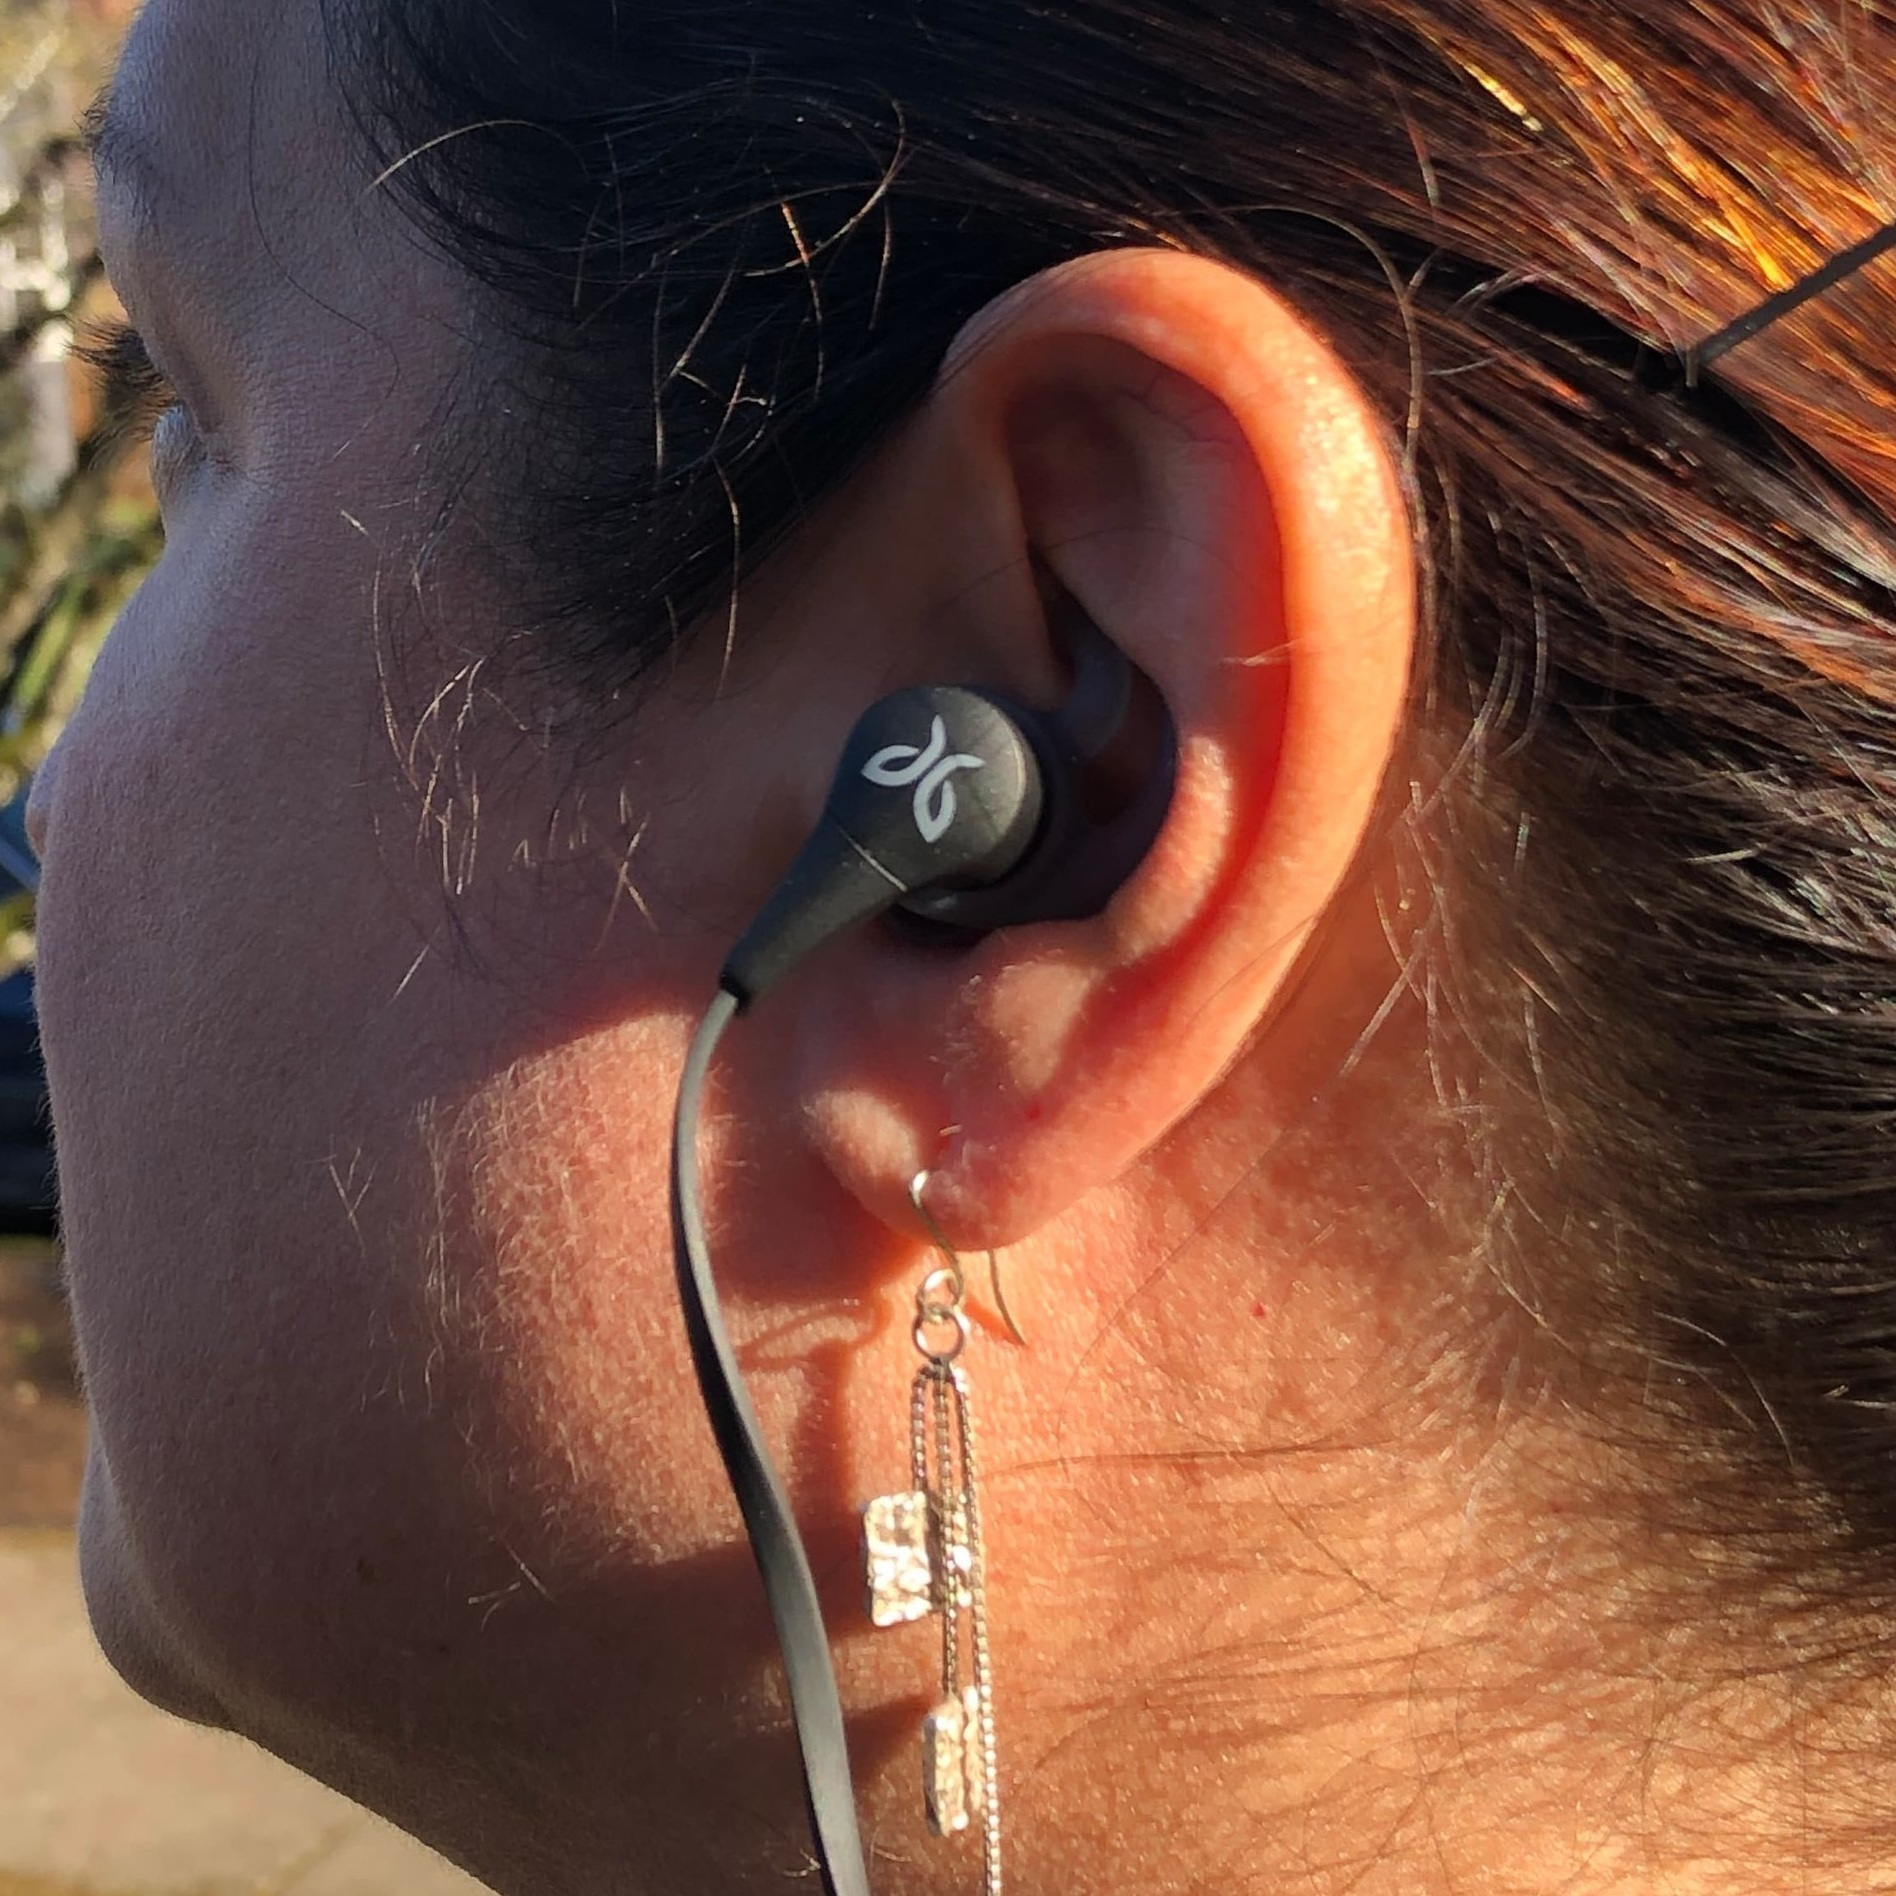 The Best Wireless Earbuds - Jaybird X4Read why→